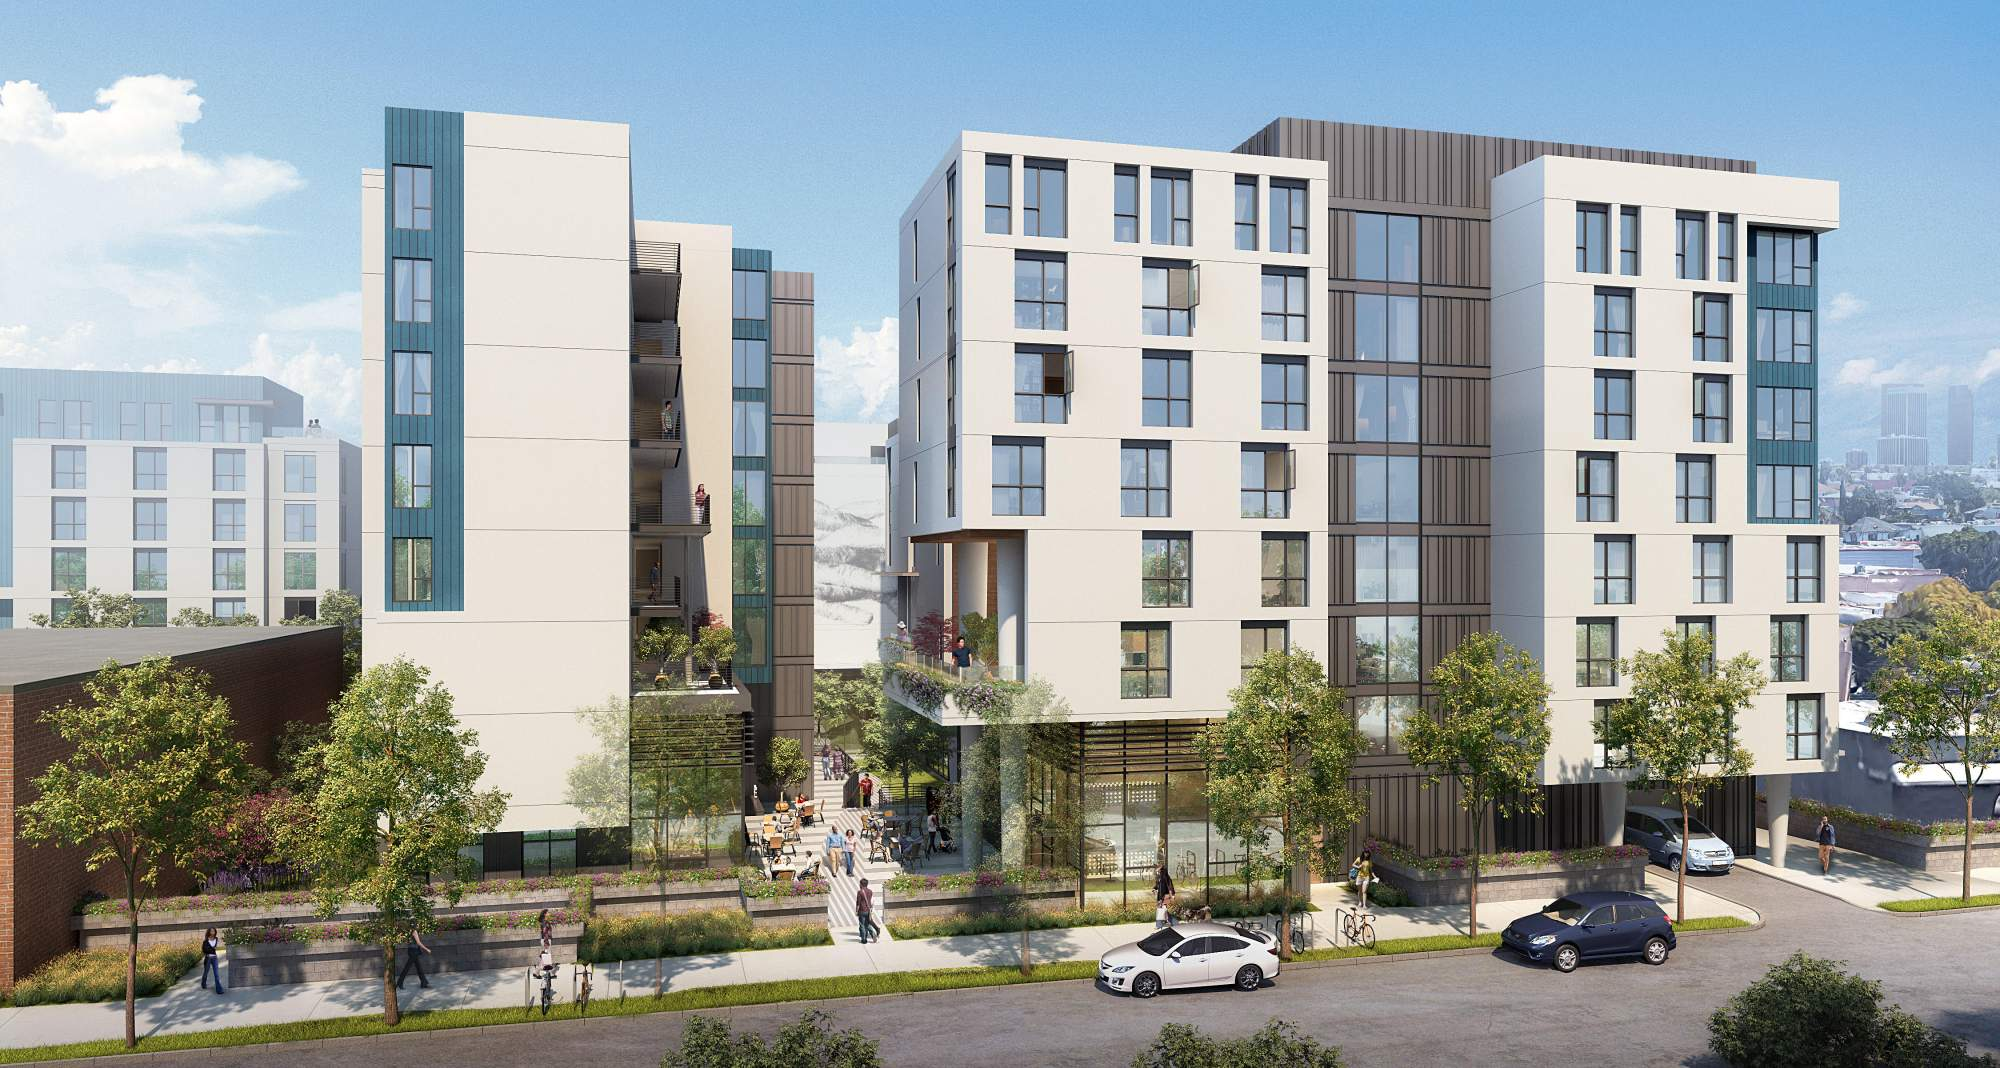 Permanent Supportive Housing Community in Los Angeles' Rampart Village Neighborhood Gains Planning Commission Approval